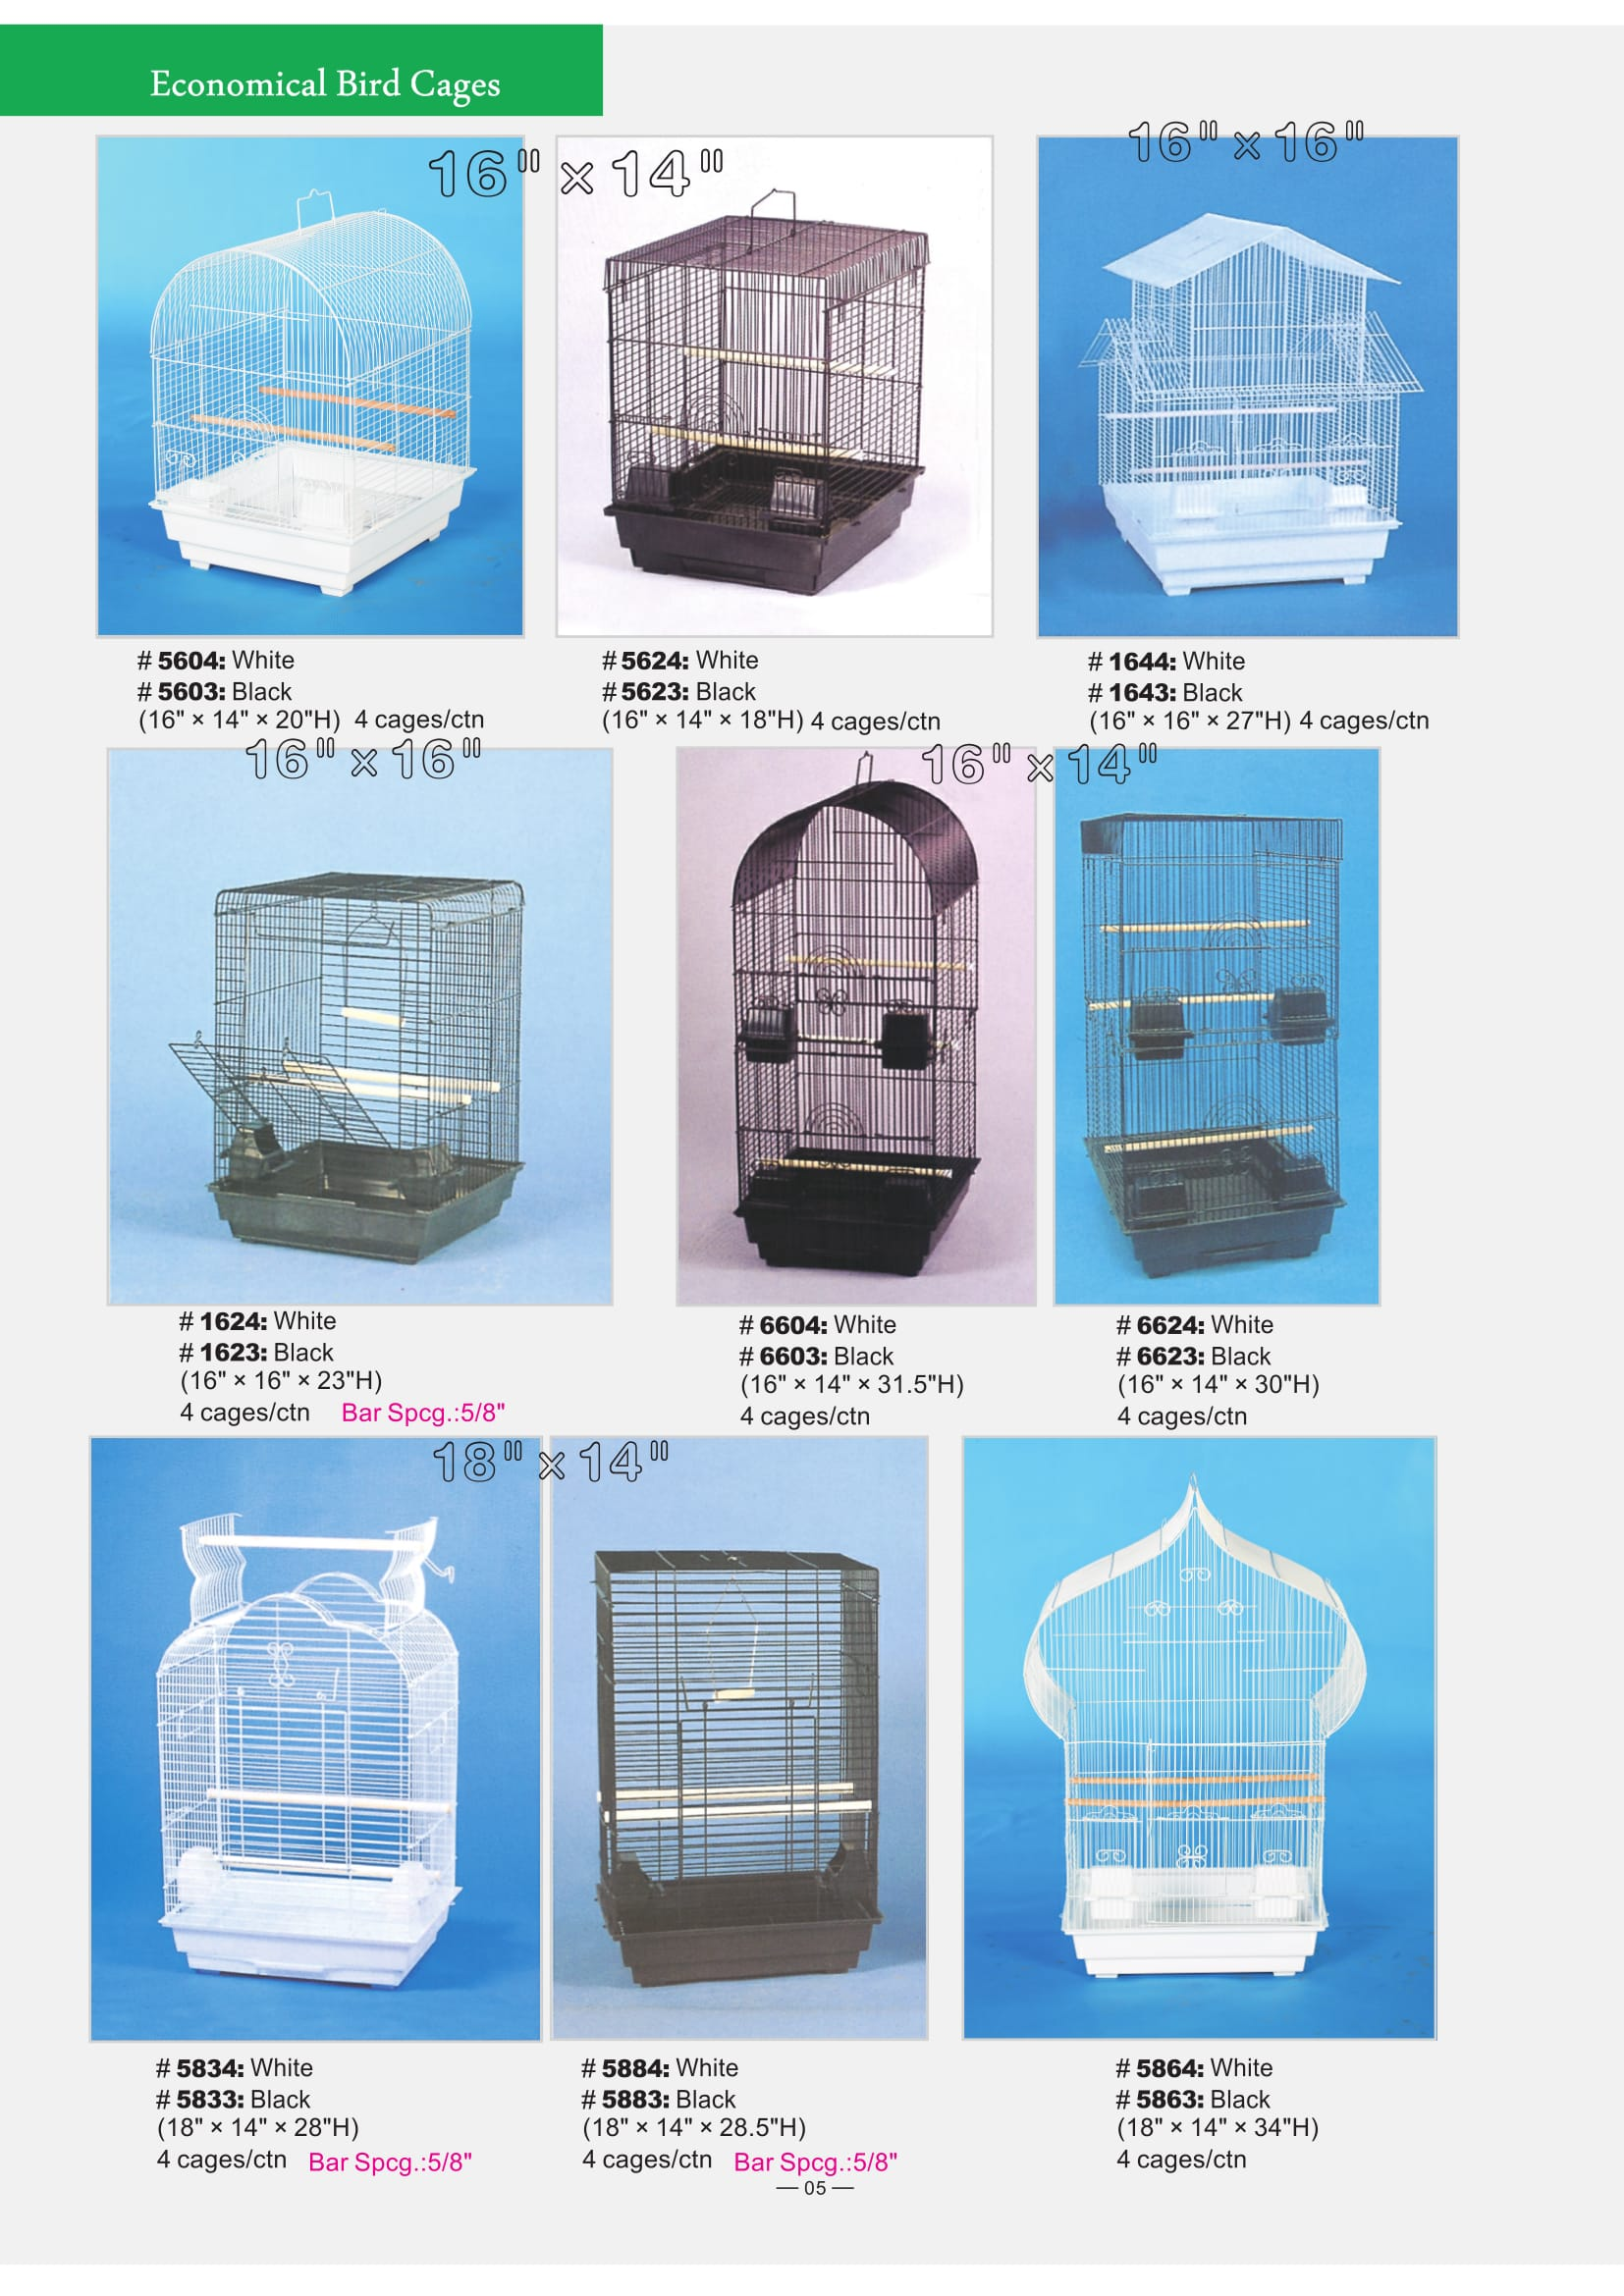 2. Economical Bird Cages part 2-2